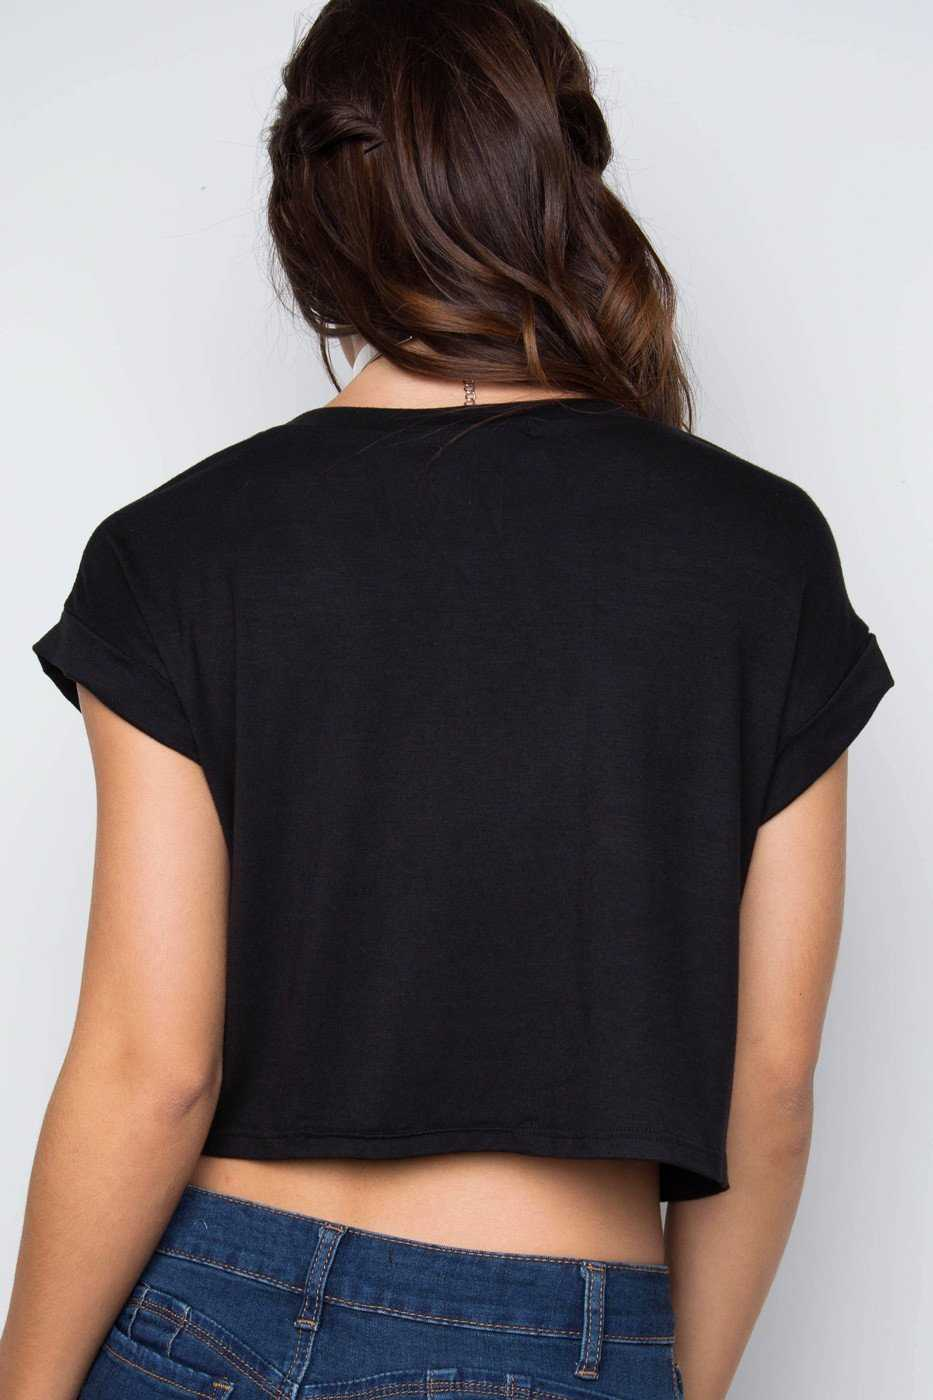 Tops - Positive Vibes Only Crop Top - Black